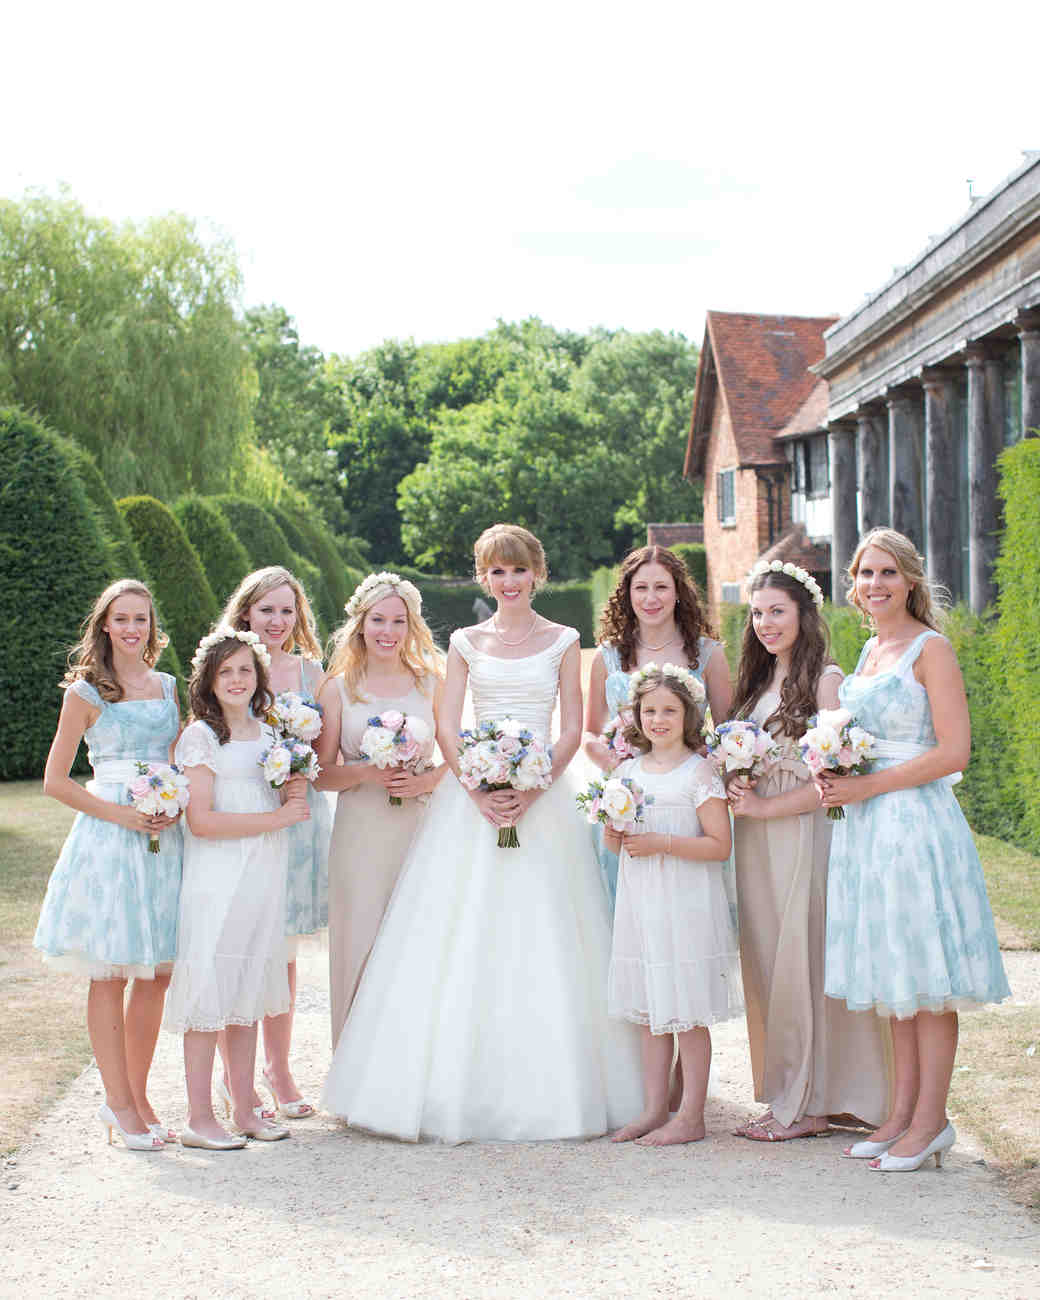 Egham Wedding Venue: A Pink And White Rustic Wedding In The English Countryside